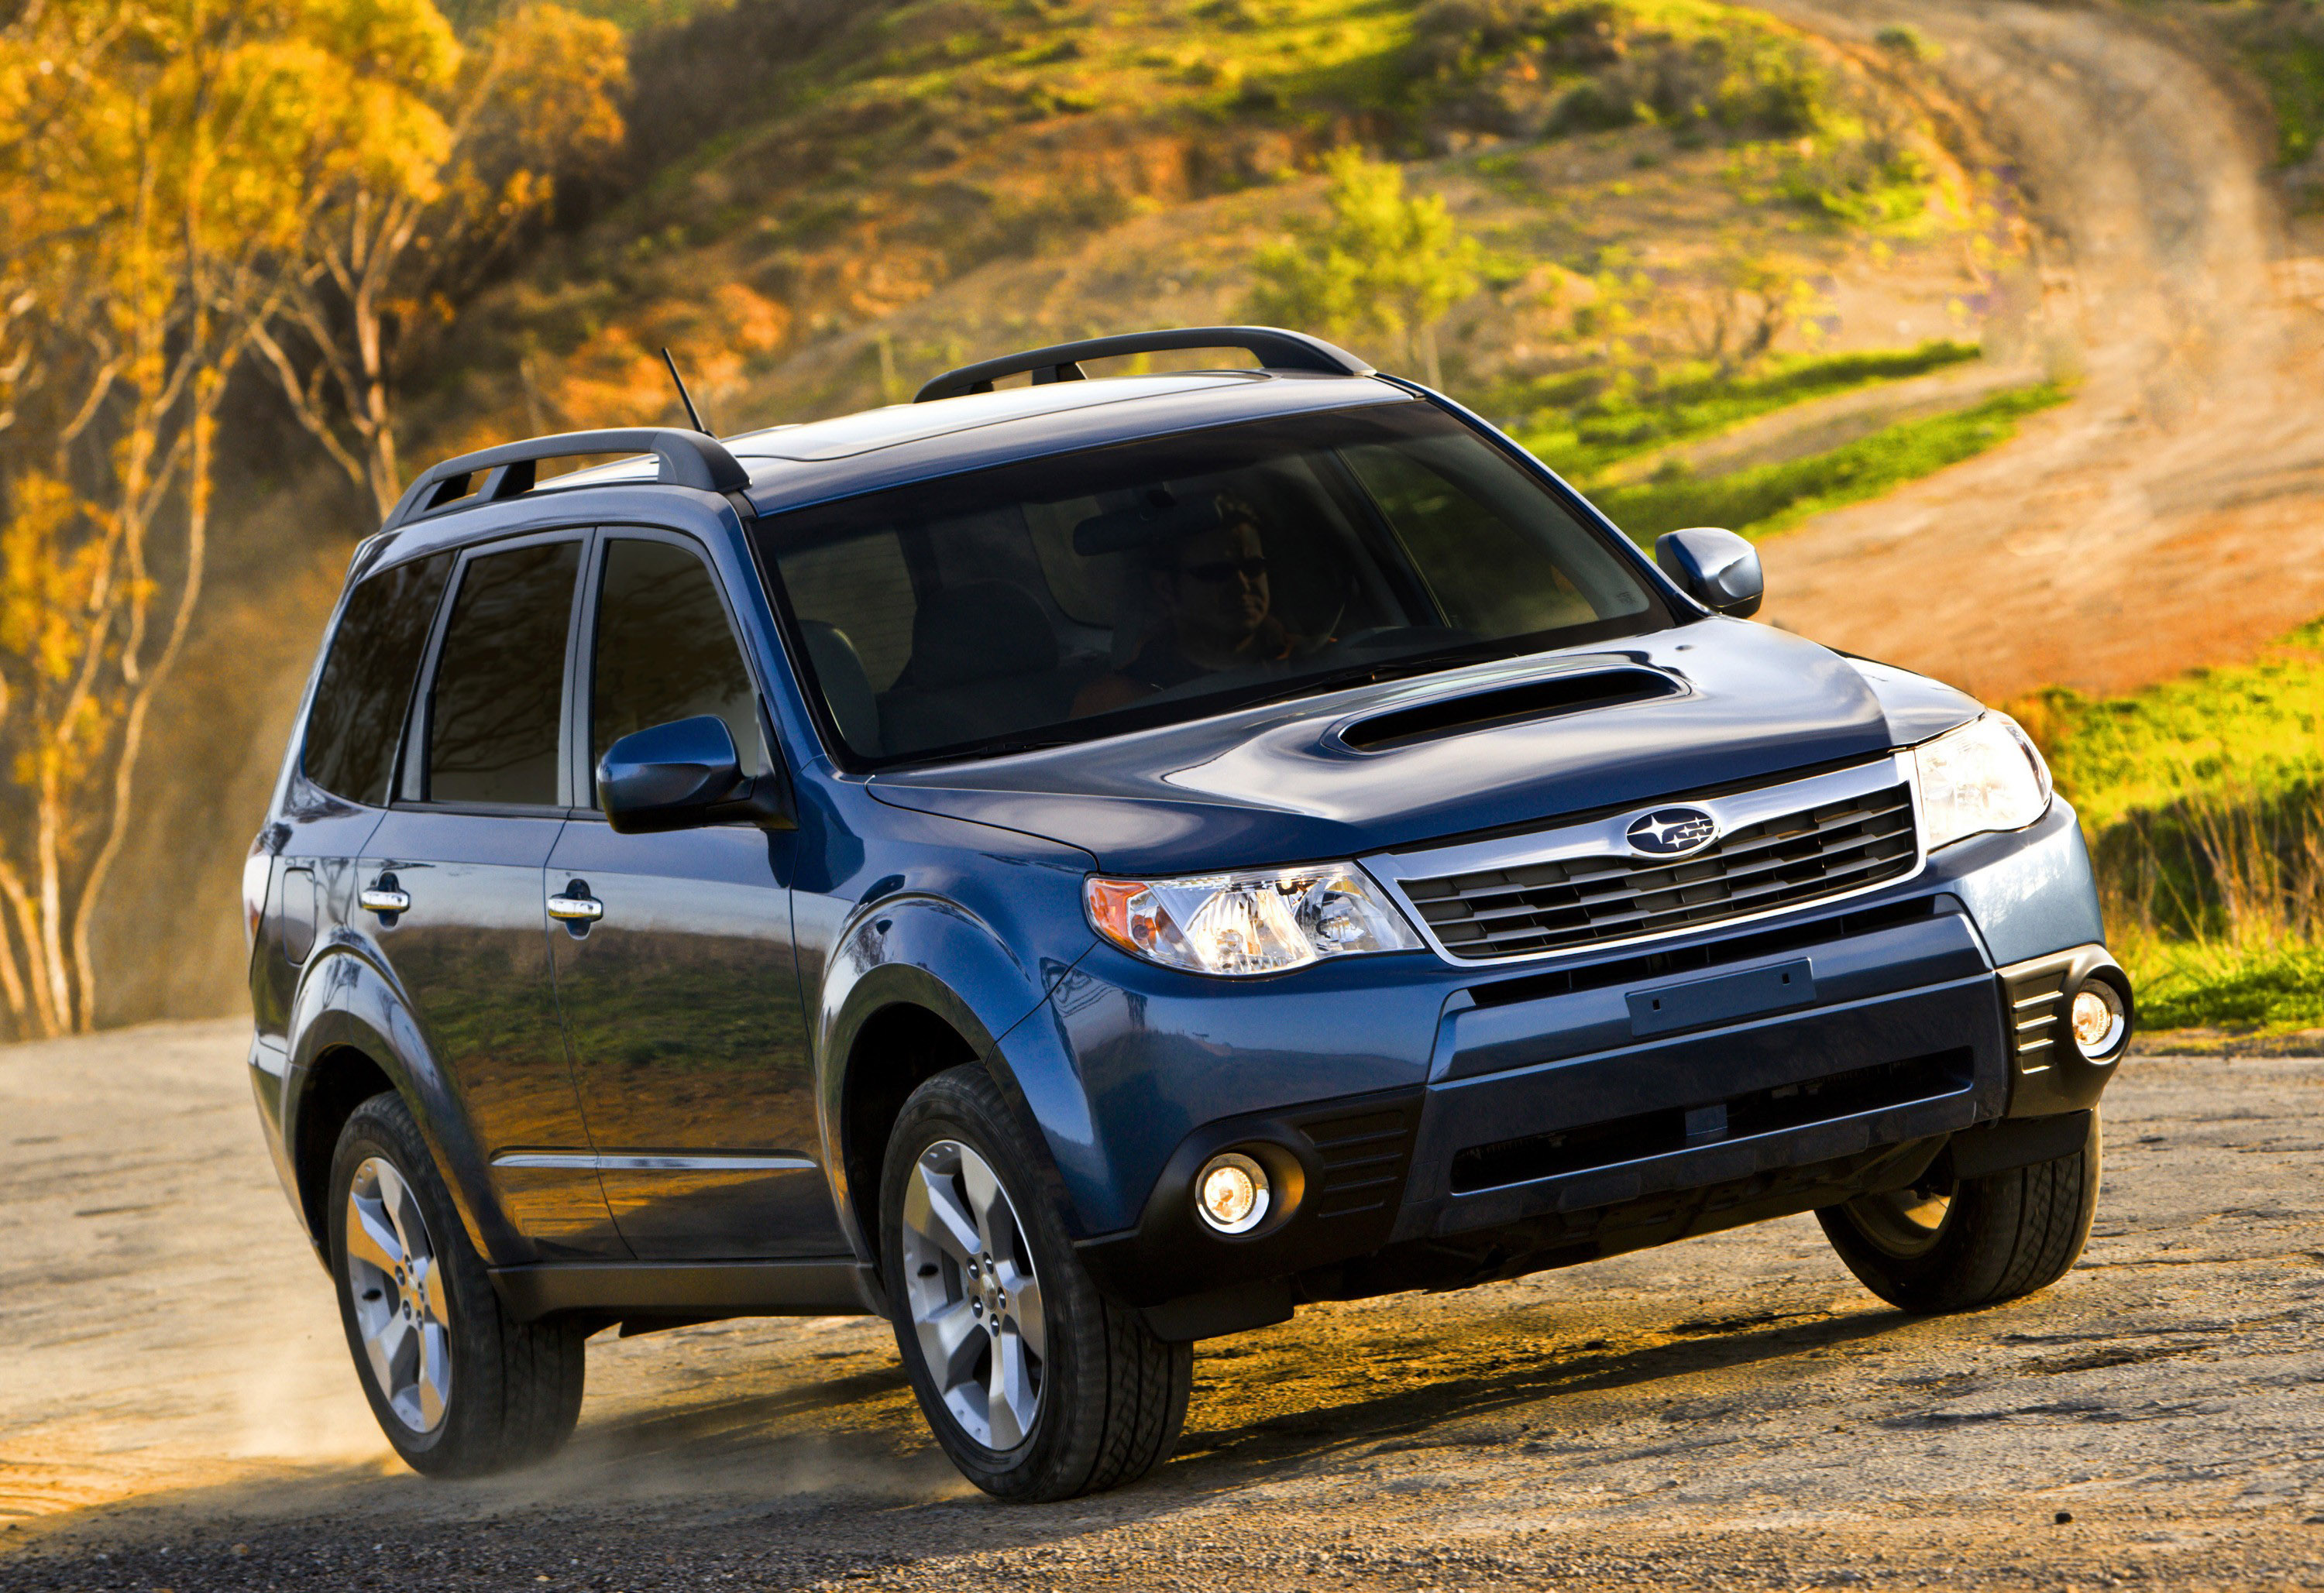 Subaru Adds More Trim Levels To 2010 Forester Line Up